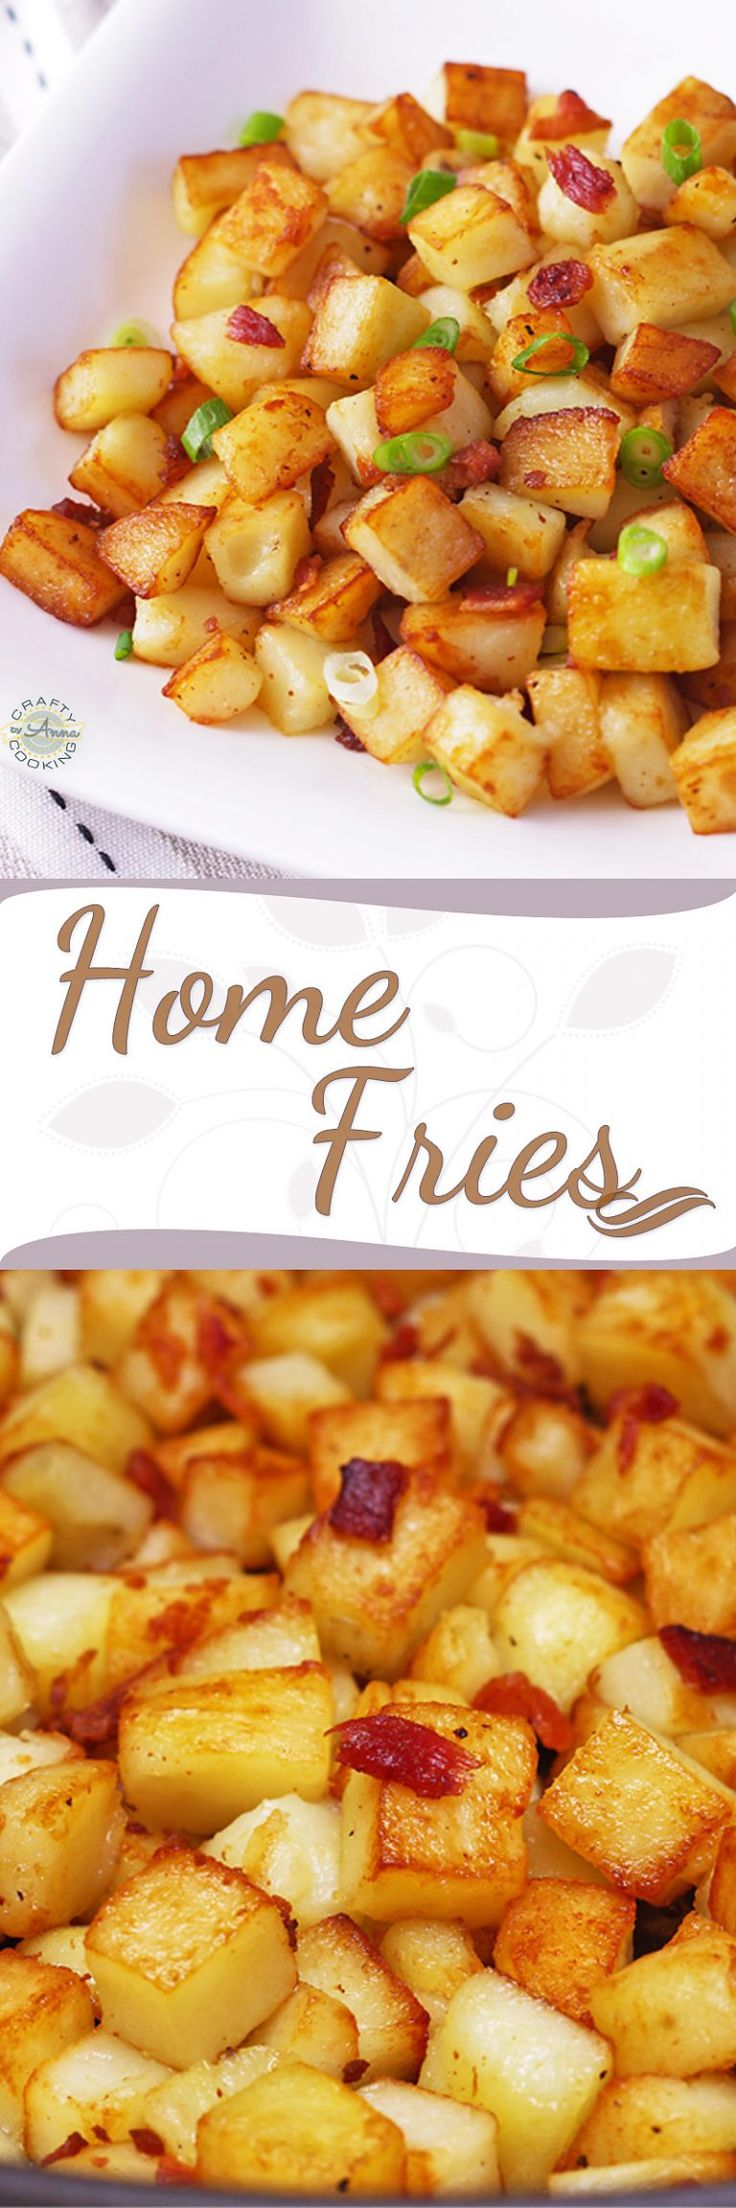 home fries recipe 698 best everyday foods images on cookbook 29709